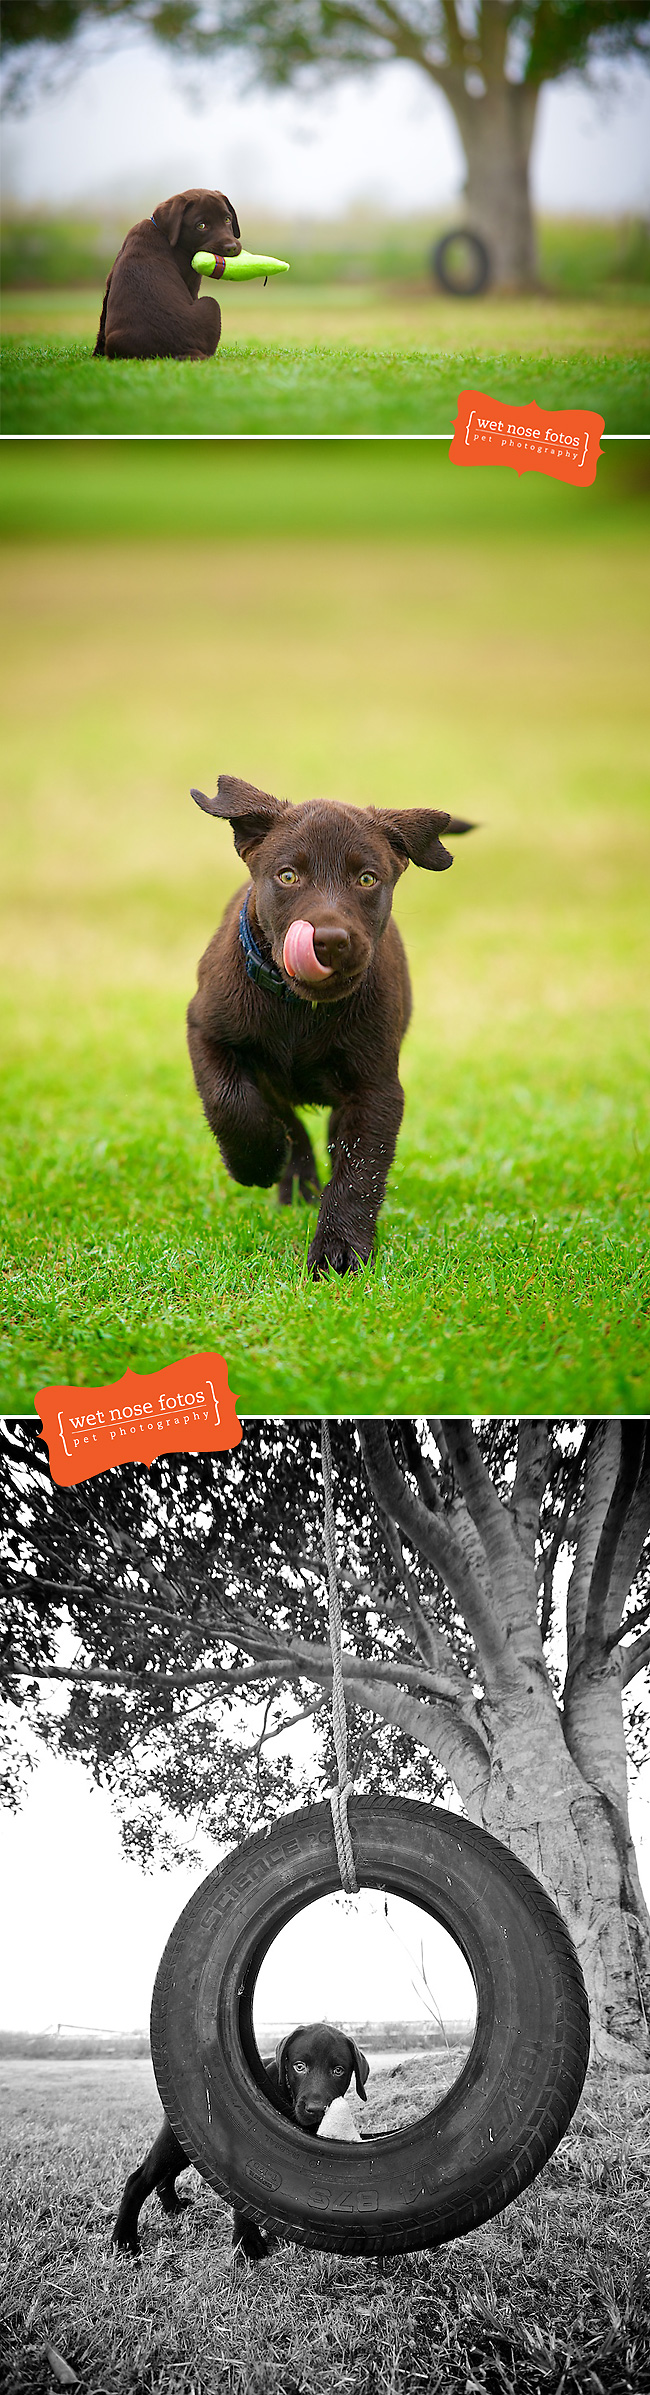 Chocolate-labrador-puppy-in-lush-green-grass-by-Shannon-Plummer-for-Wet-Nose-Fotos-pet-photography-wallpaper-wp5205180